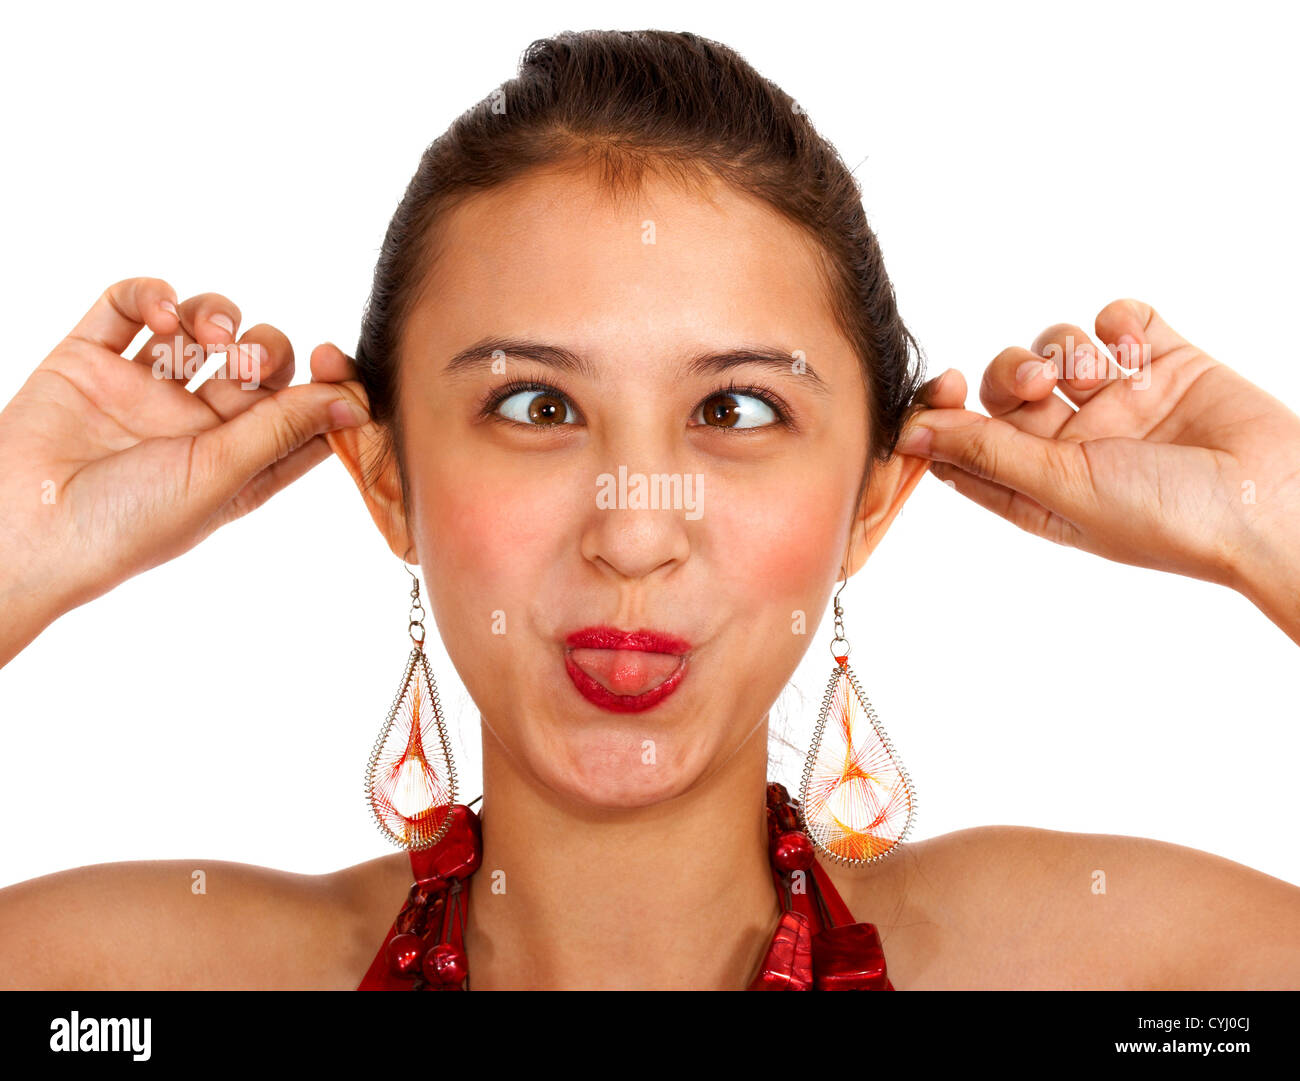 Grimace face clip art stock photo woman pulls a face in upset - Funny Girl Pulling A Face Cross Eyed And Pulling Her Ears Stock Image